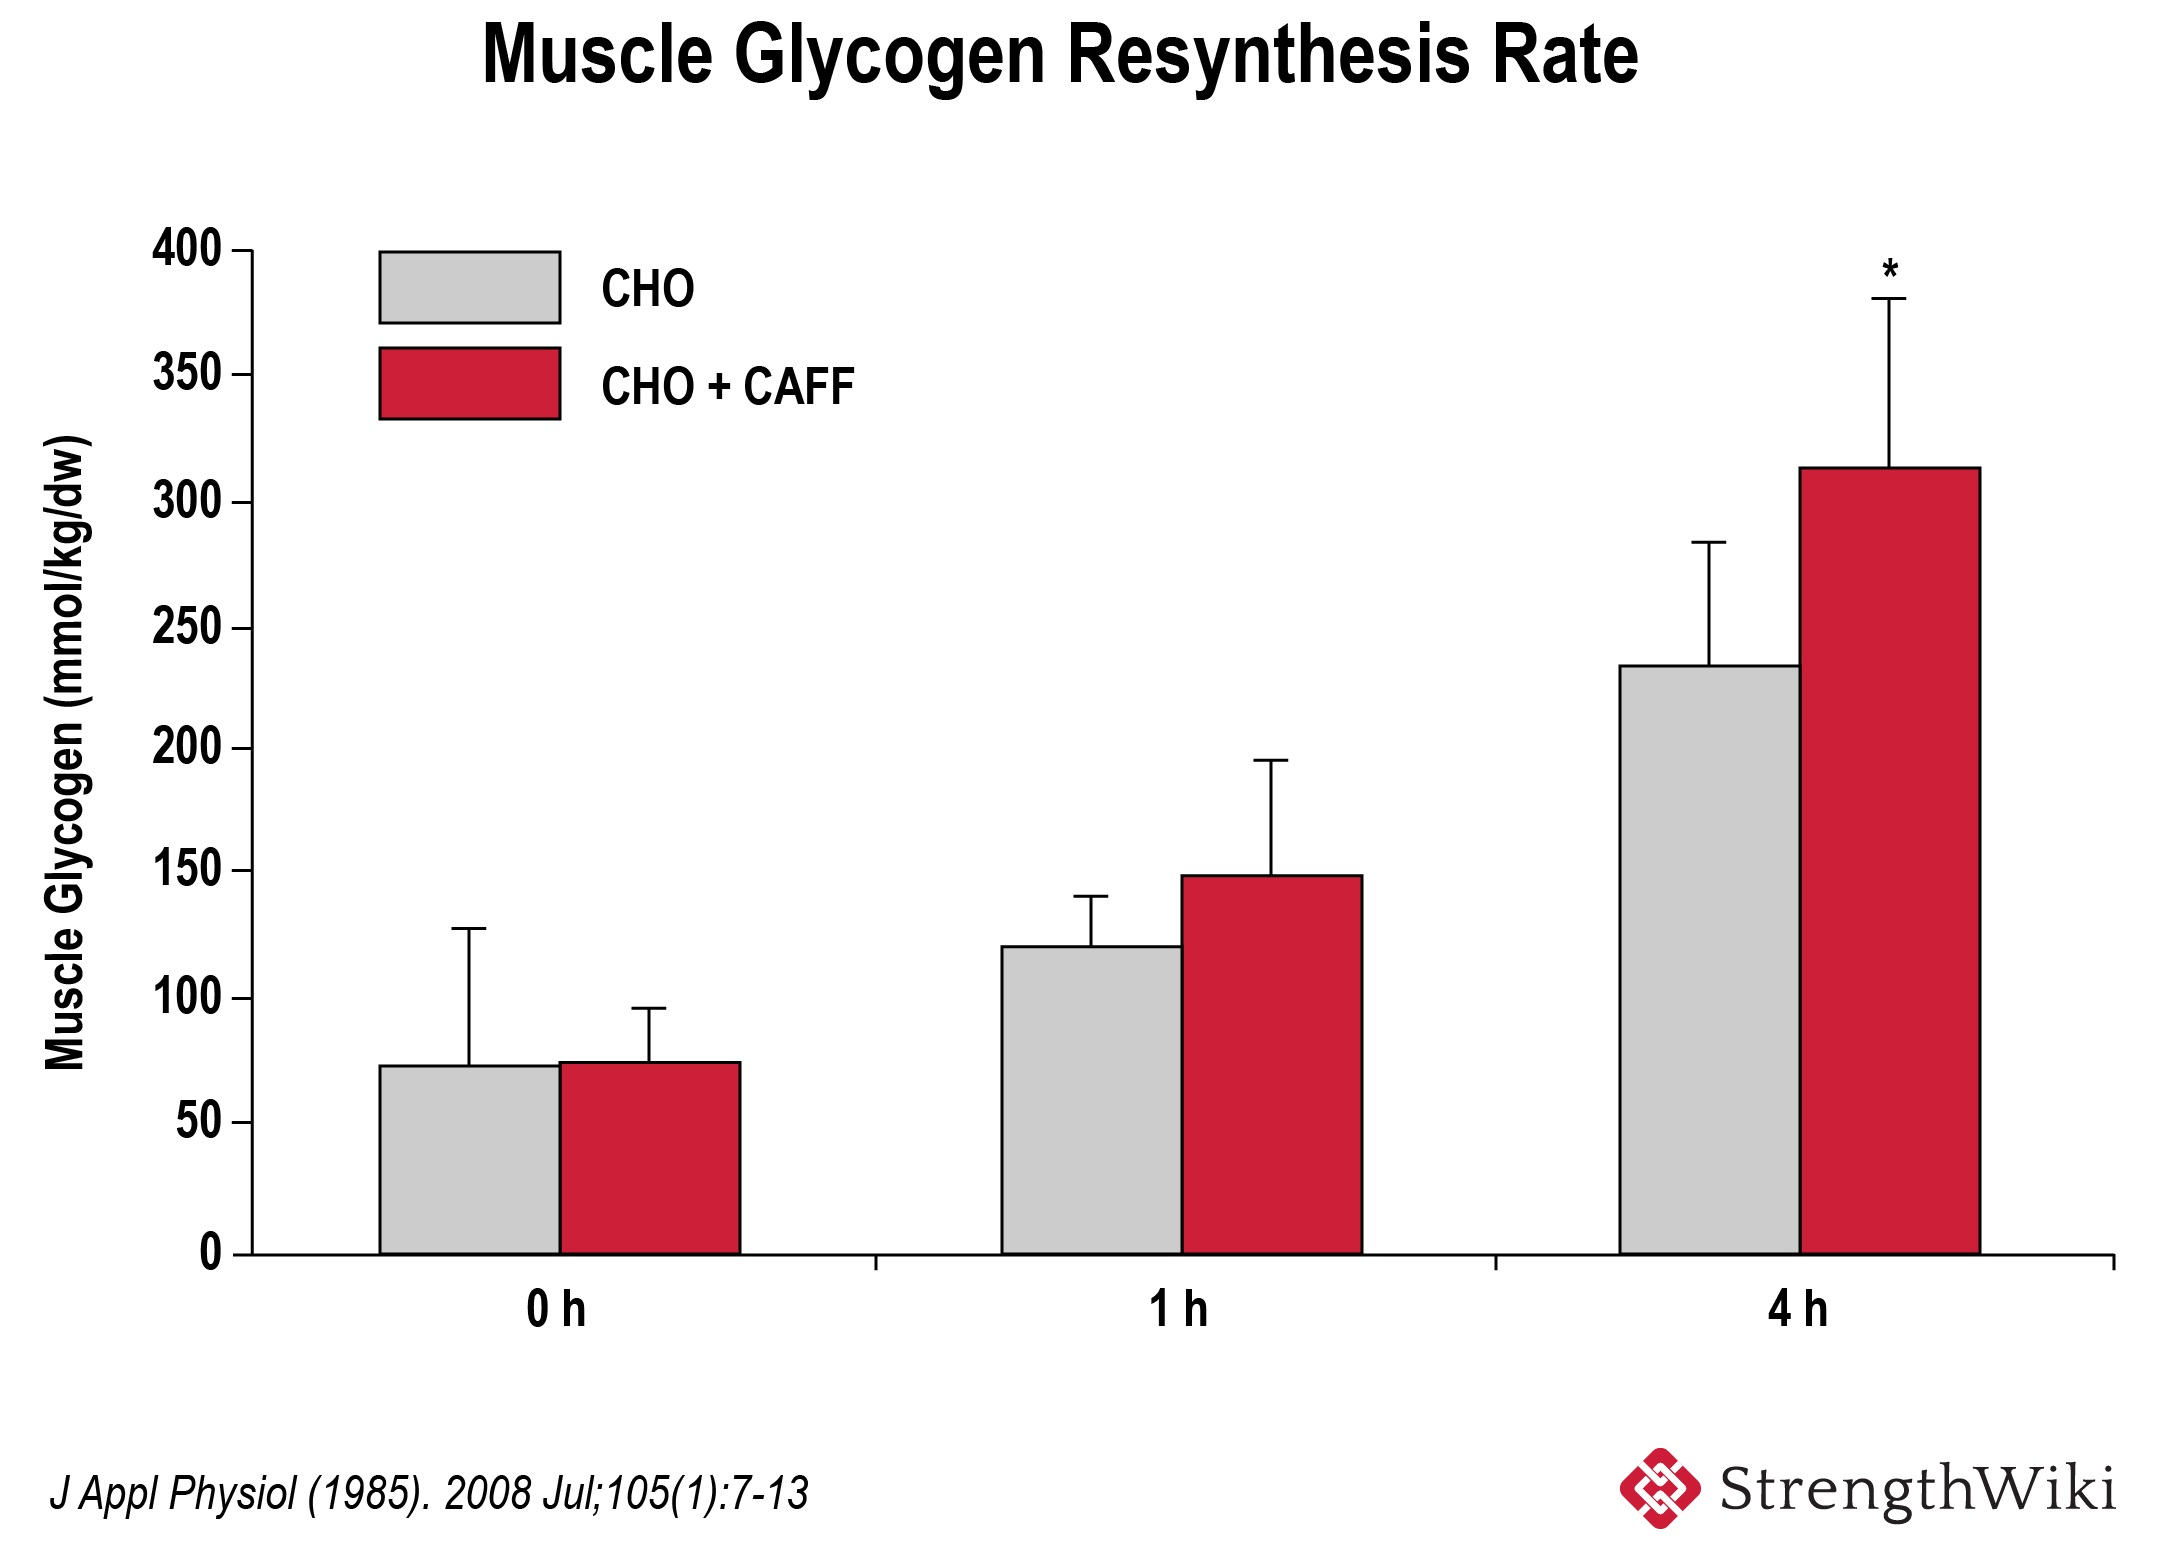 Muscle glycogen resynthesis rate